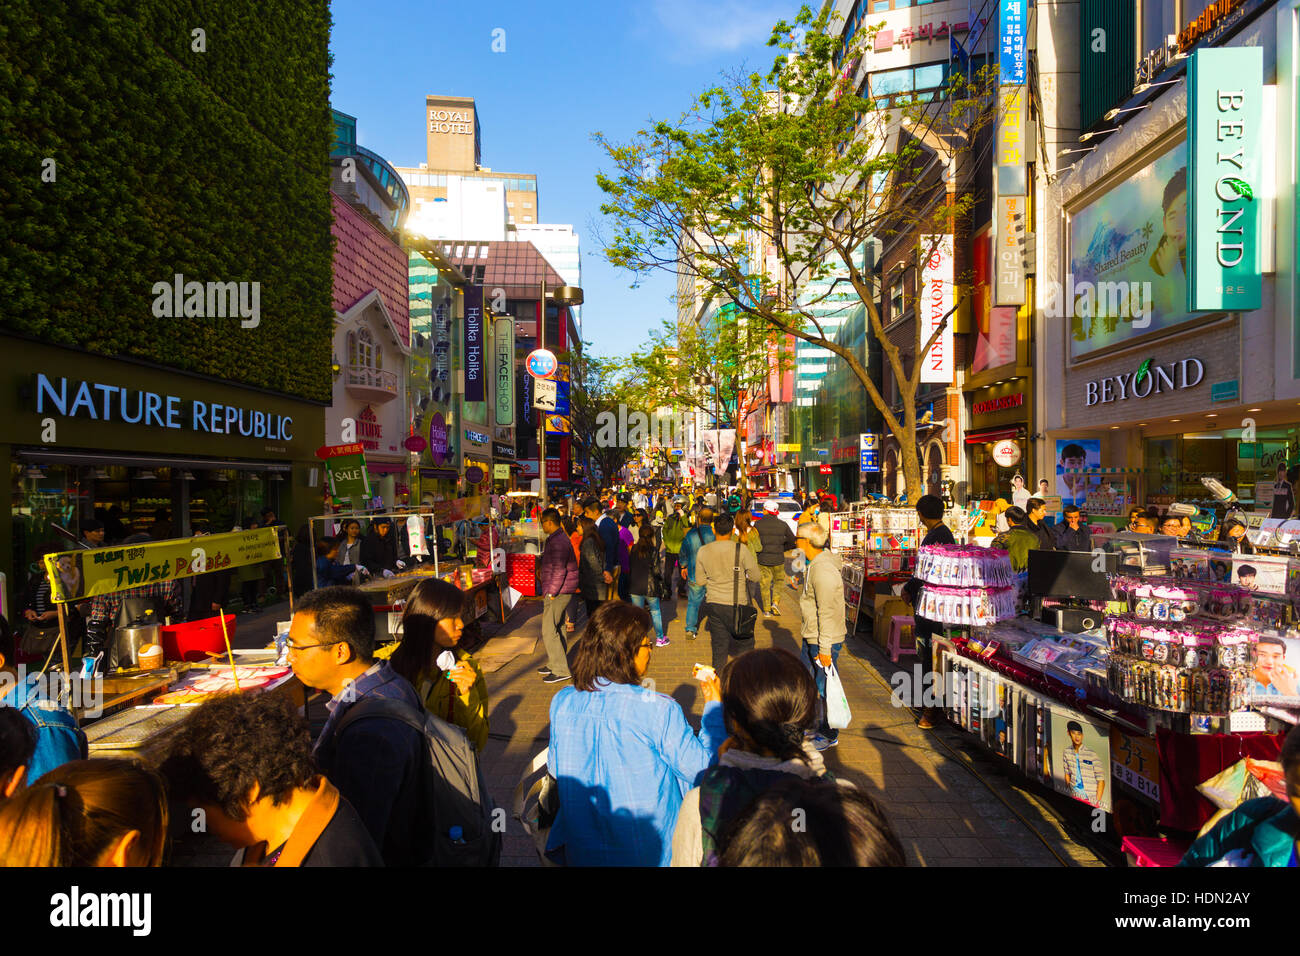 Tourists walking down narrow Myeongdong pedestrian shopping street with commercialism of stores, signs and crowded - Stock Image